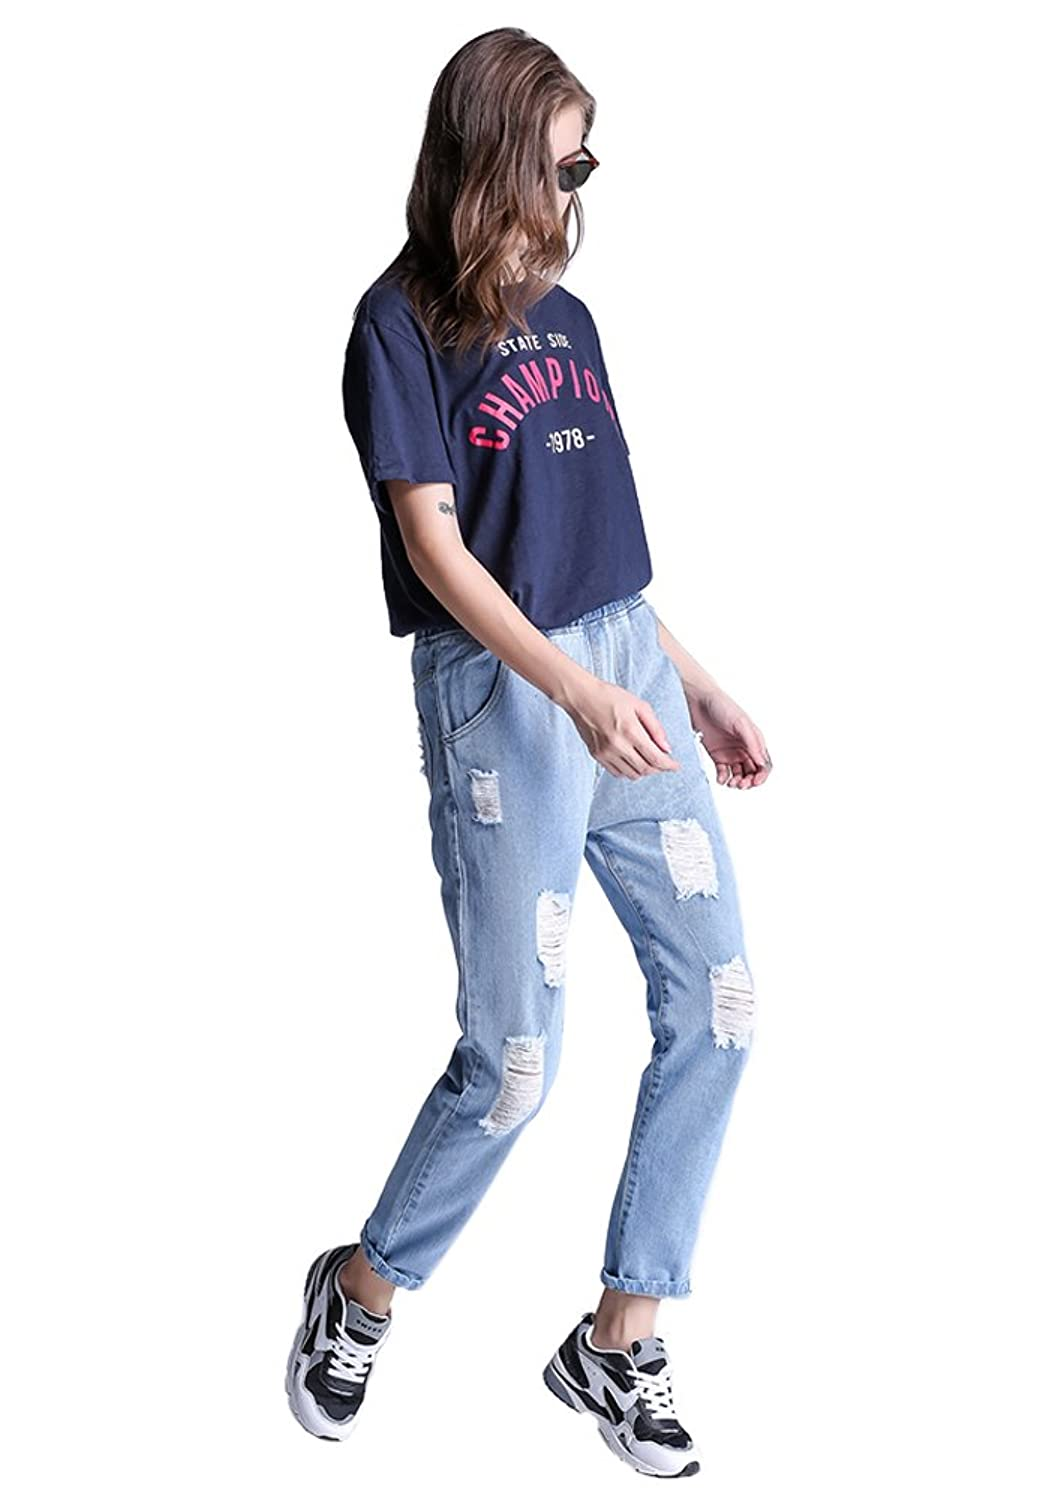 DOOXIUNDI Women's Destructed Boyfriend Loose Jeans in Blue